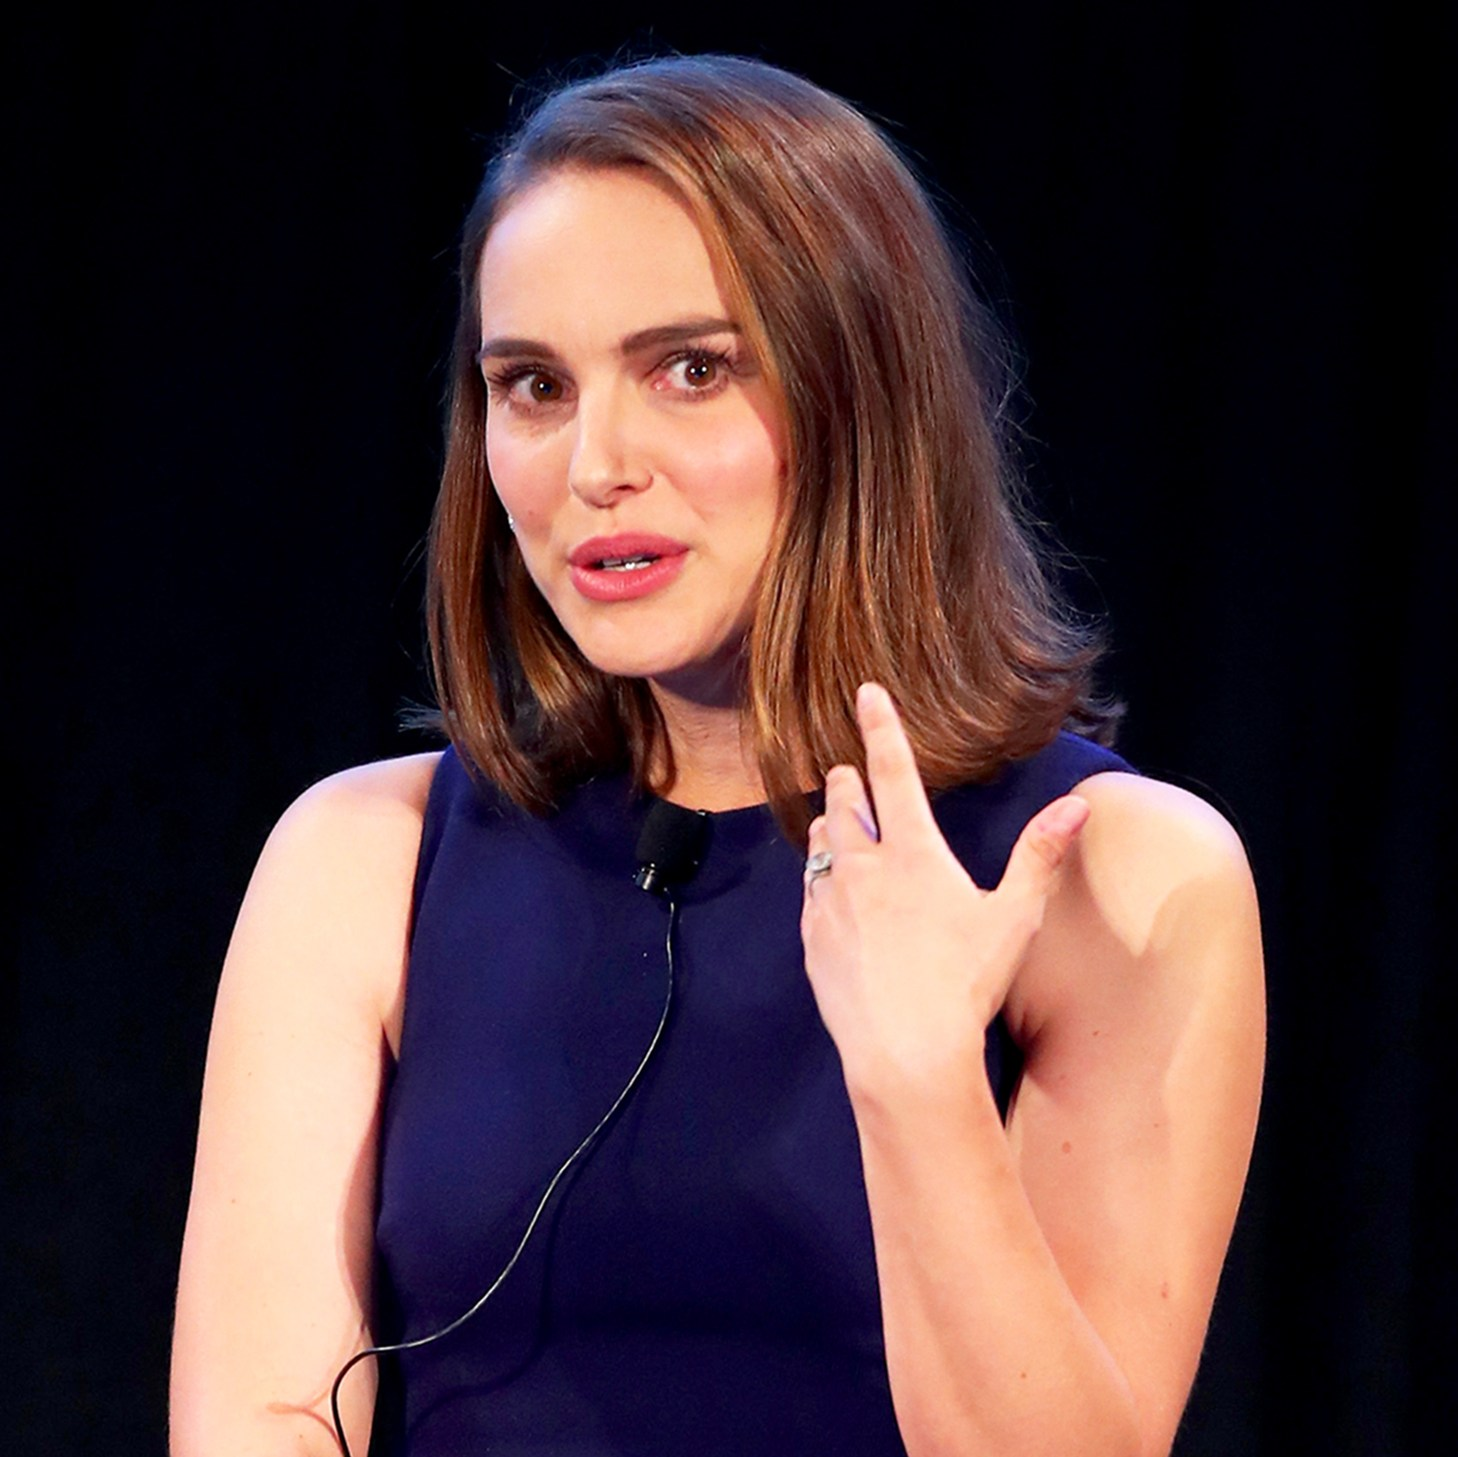 Natalie Portman onstage during Vulture Festival LA presented by AT&T at Hollywood Roosevelt Hotel on November 19, 2017 in Hollywood, California.